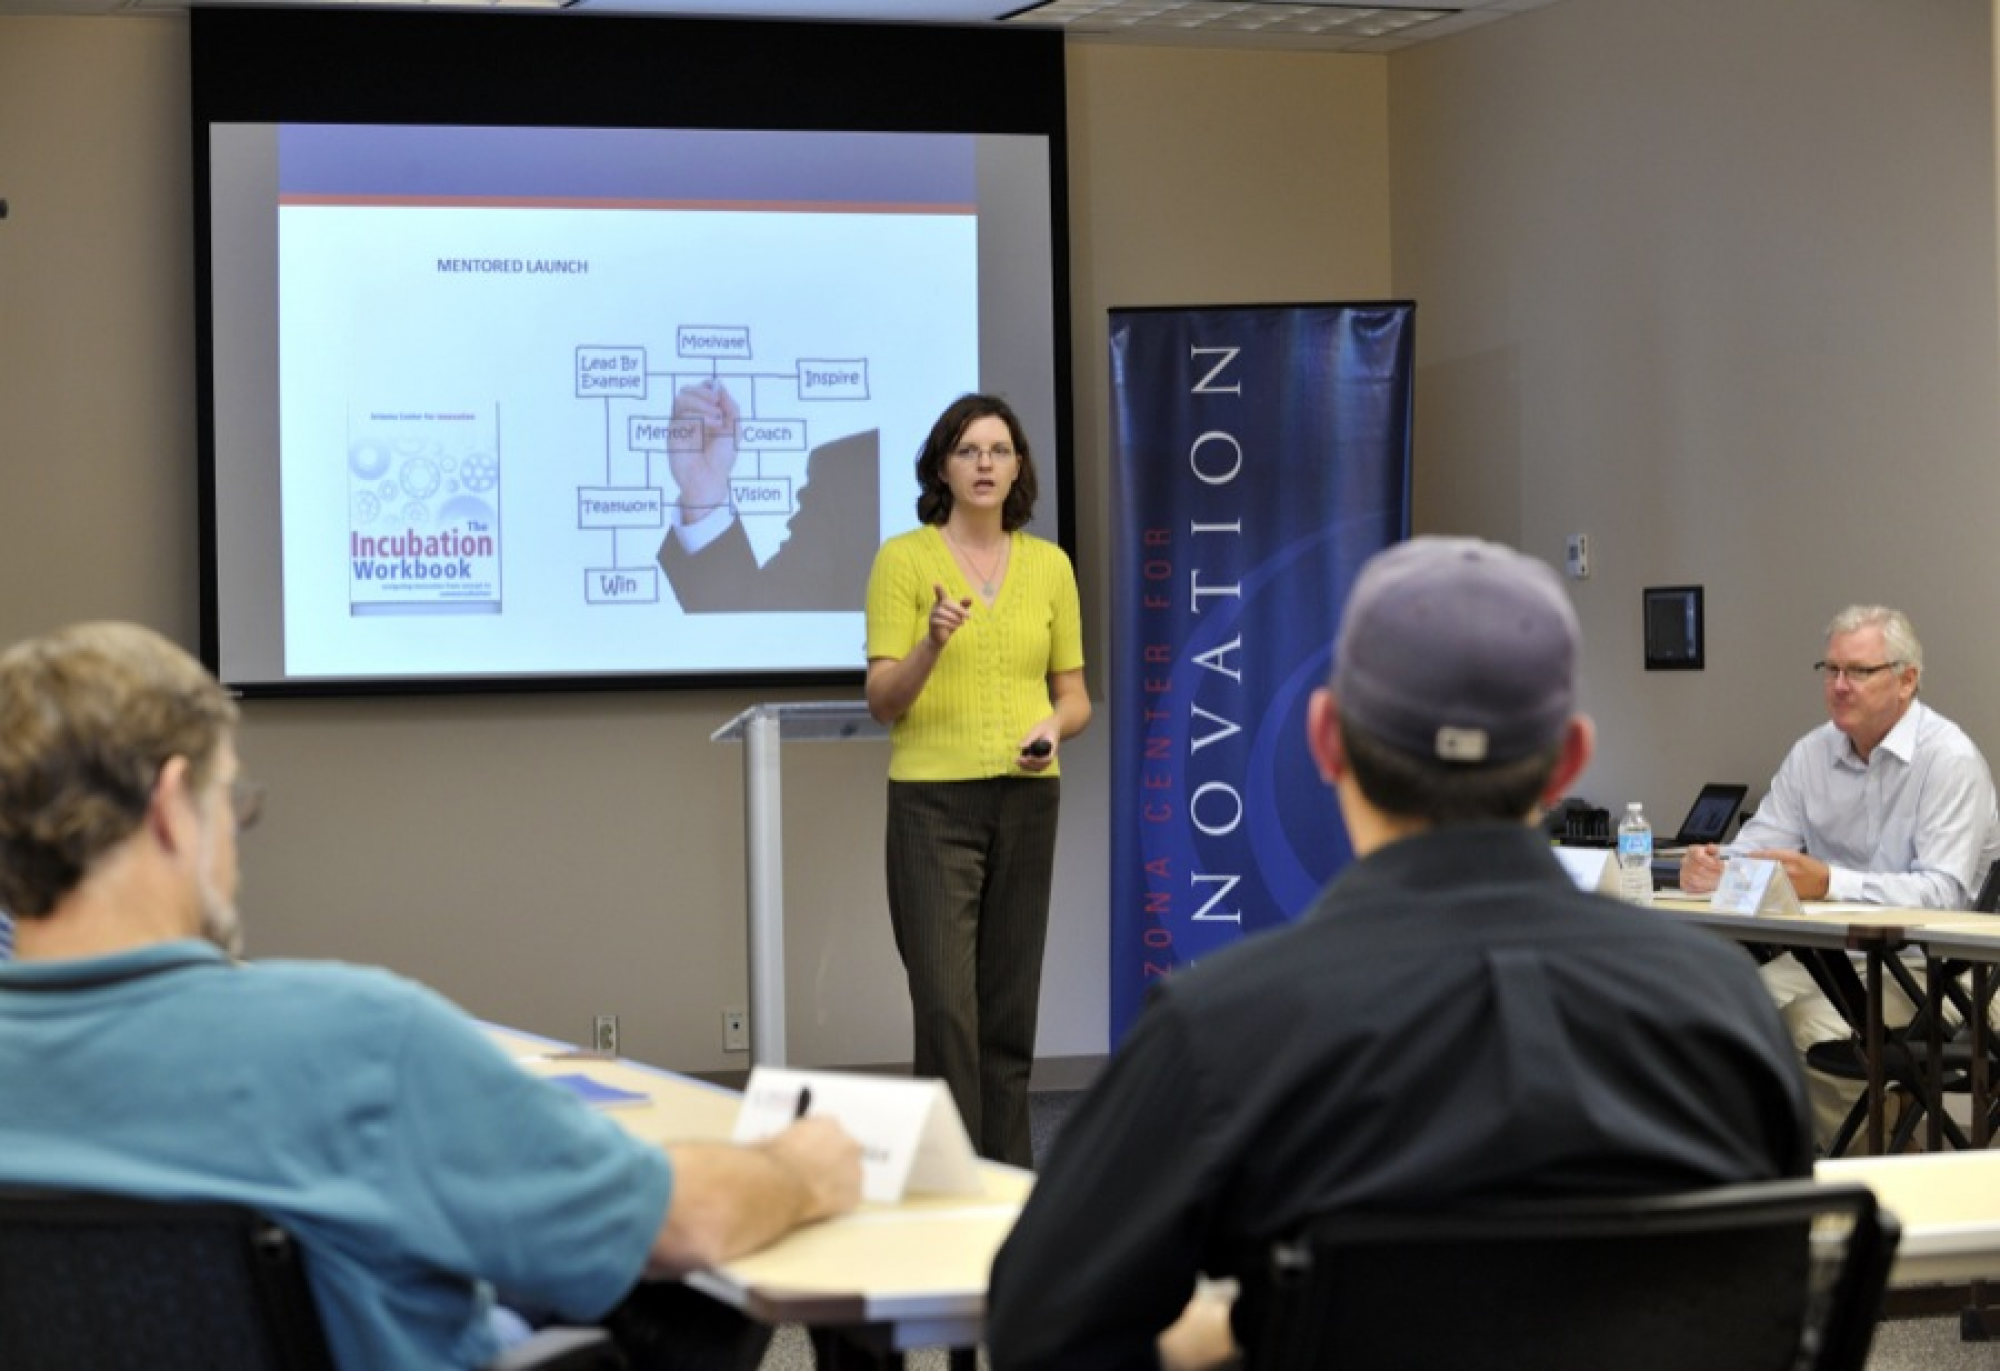 Anita Bell, acting director for the Arizona Center for Innovation, housed at the UA Tech Park, conducts a workshop as part of the Mentored Launch program for startup companies.